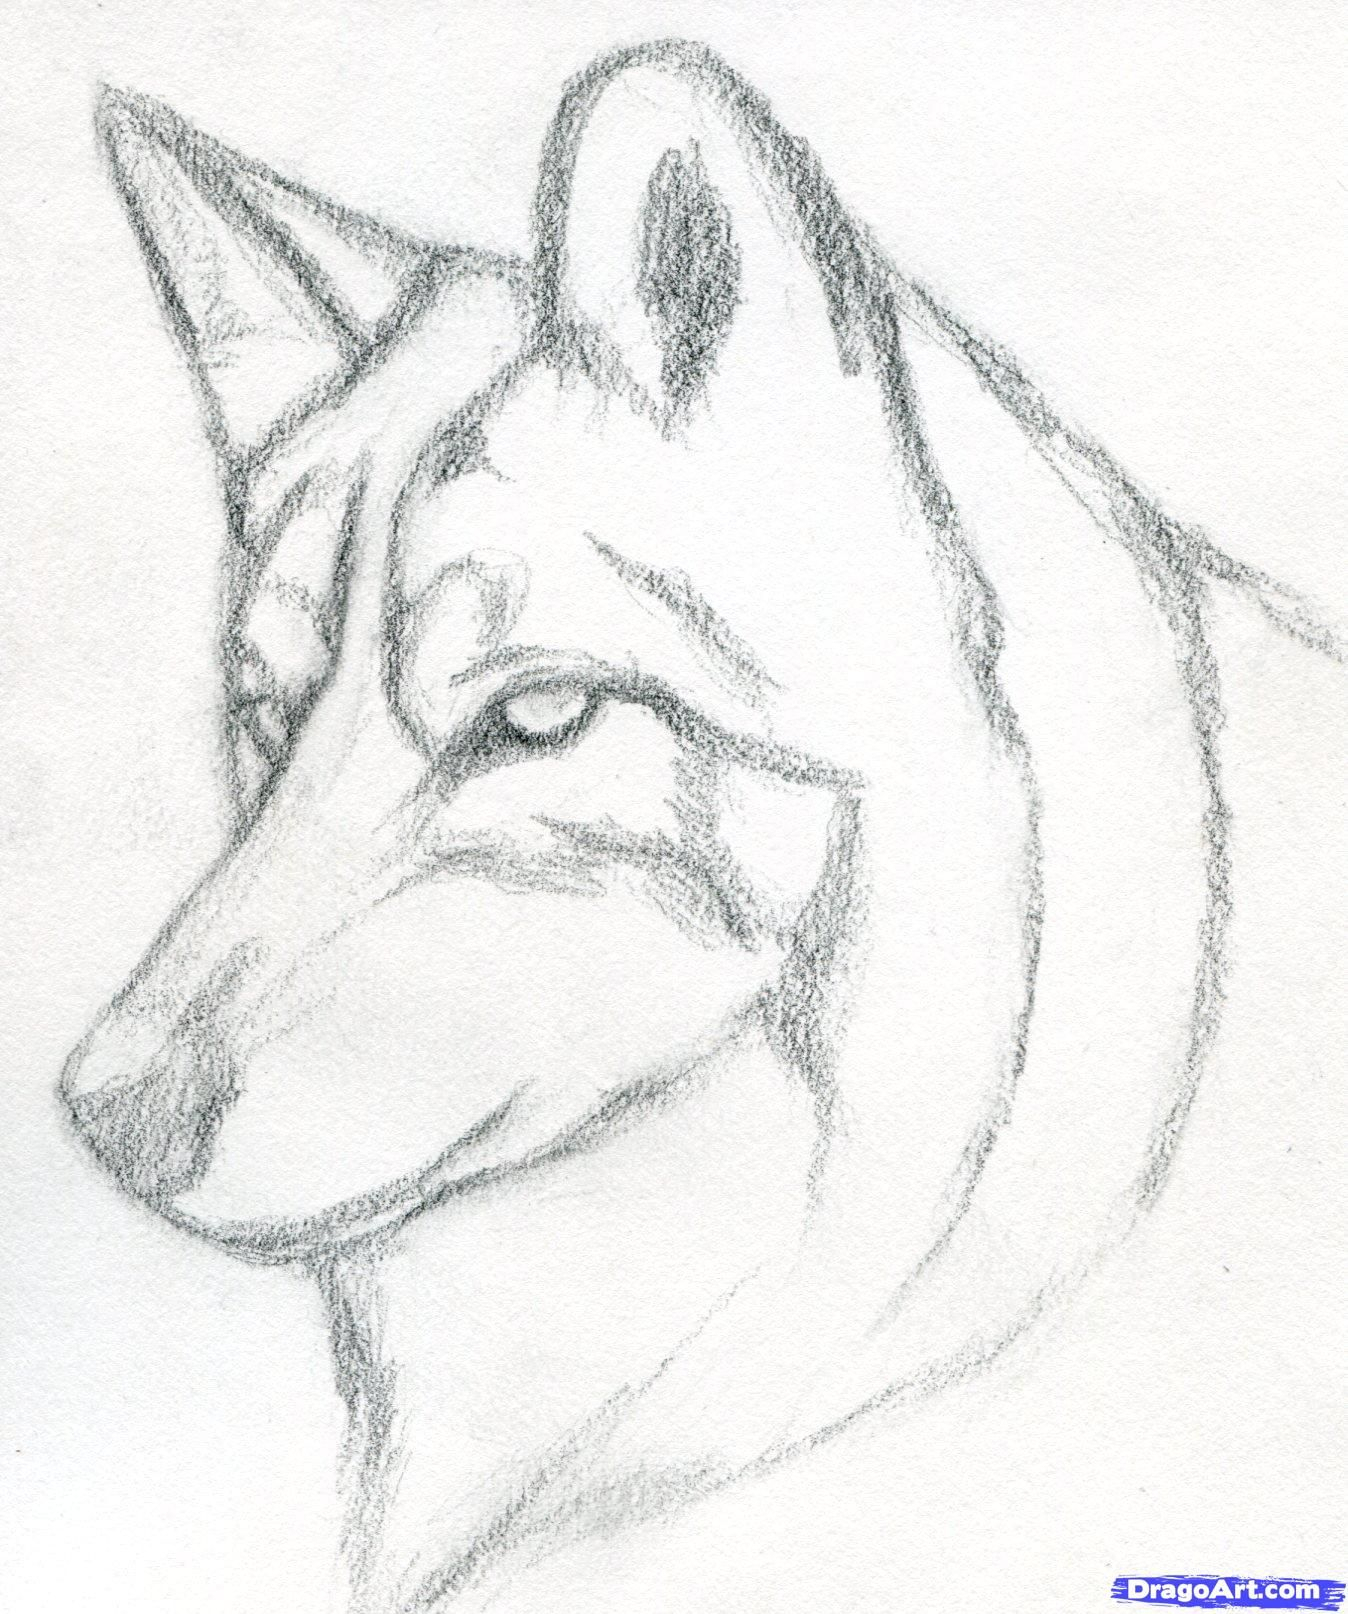 1348x1614 Wolf Sketch Easy How To Draw A Wolf Head, Mexican Wolf Step 3